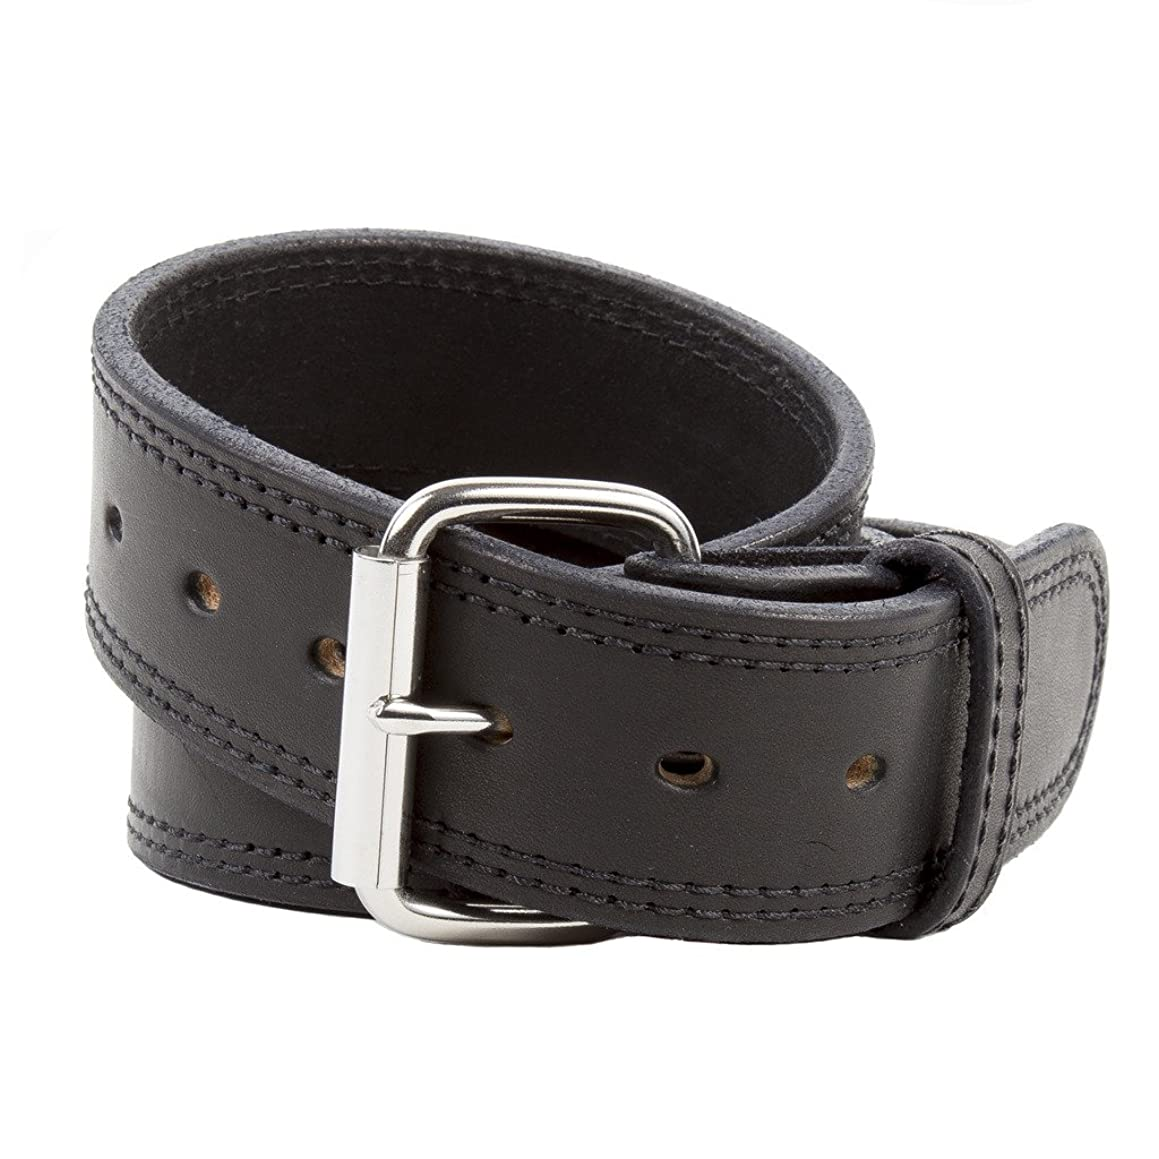 Relentless Tactical The Colossal Concealed Carry CCW Leather Gun Belt - 14 ounce - 1 3/4 inch Premium Full Grain Leather Duty Belt - Handmade in the USA! v47164960705